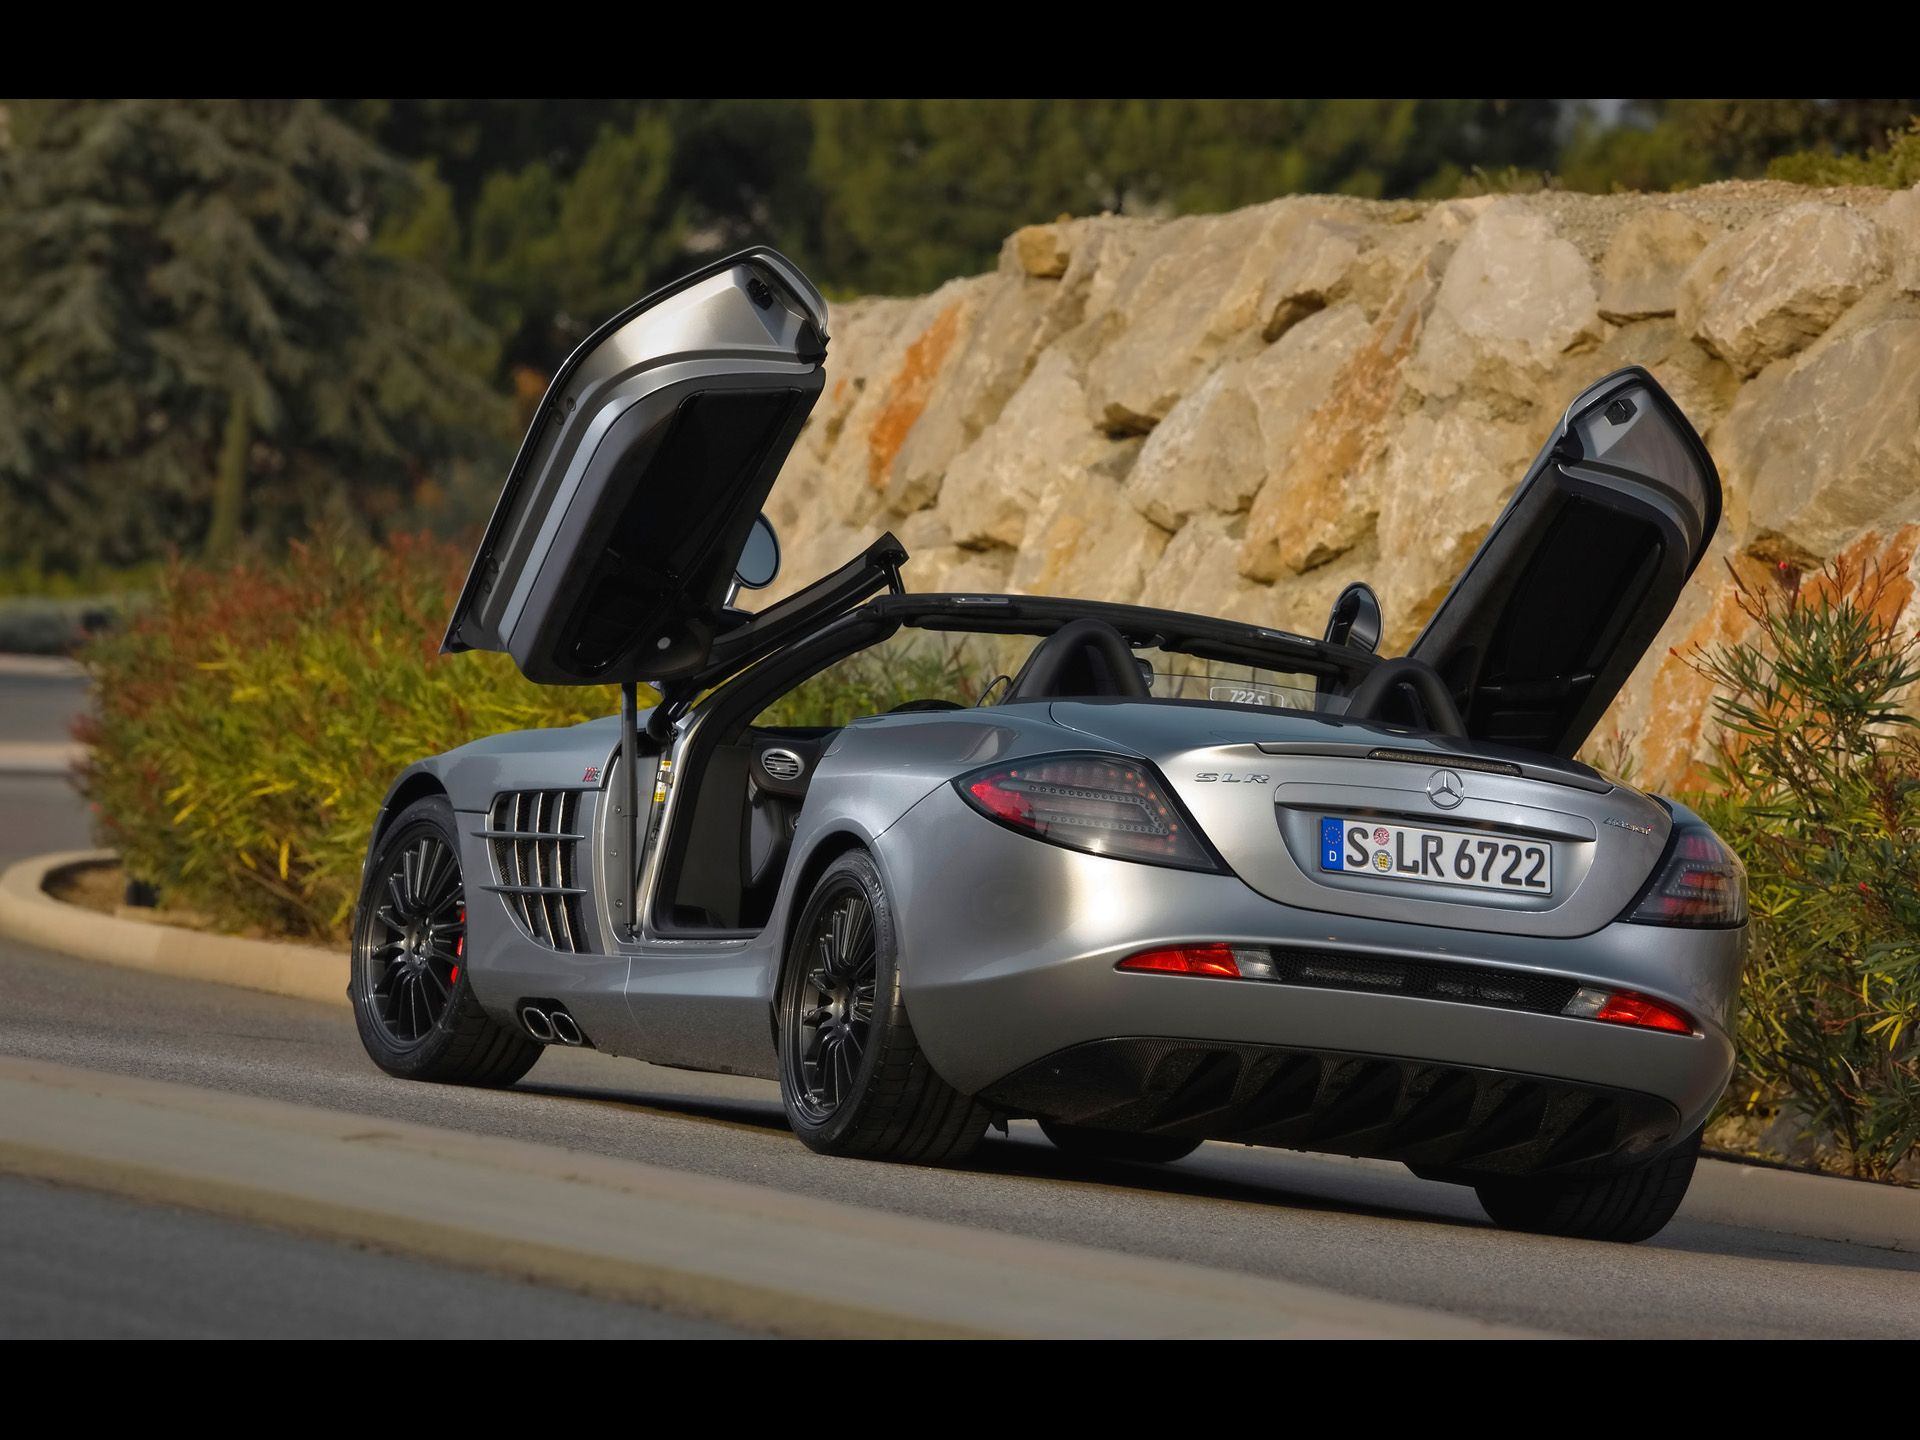 2009 Mercedes Benz SLR McLaren Roadster 722 S   Rear Angle Topless Open  Doors   1920x1440   Wallpaper